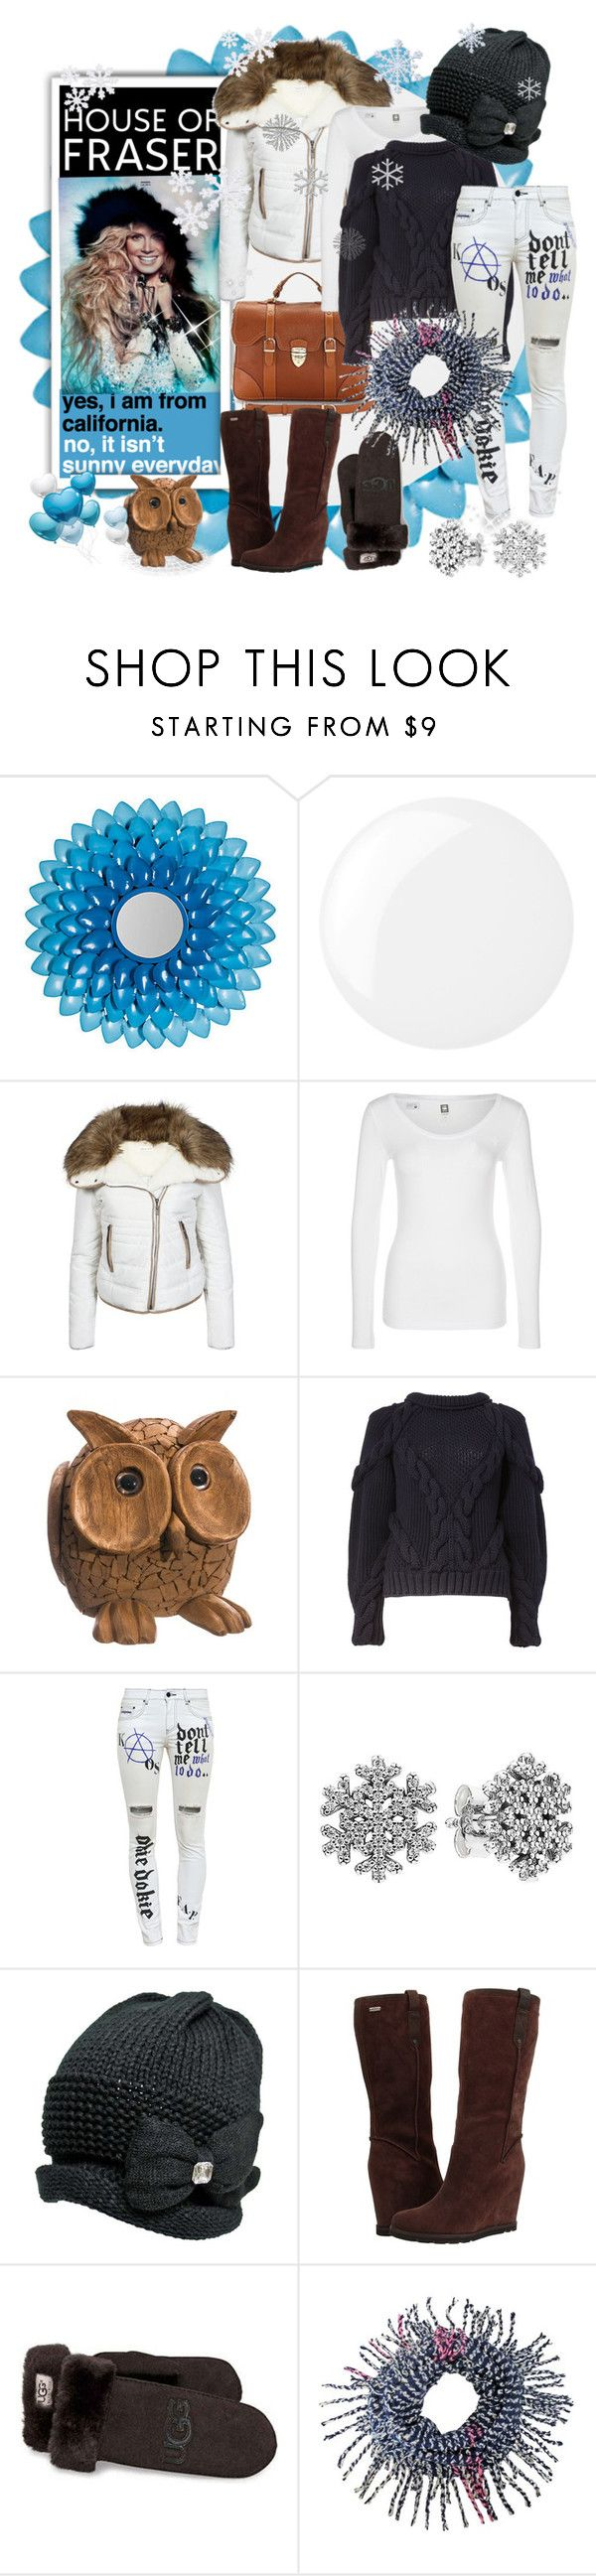 """""""Puffer jacket for winter, House of Fraser"""" by amara-m-hafeez ❤ liked on Polyvore featuring Essie, House of Fraser, Aspinal of London, Urban Bliss, G-Star, Allstate Floral, Alexander McQueen, Filles à papa, Pandora and UGG Australia"""